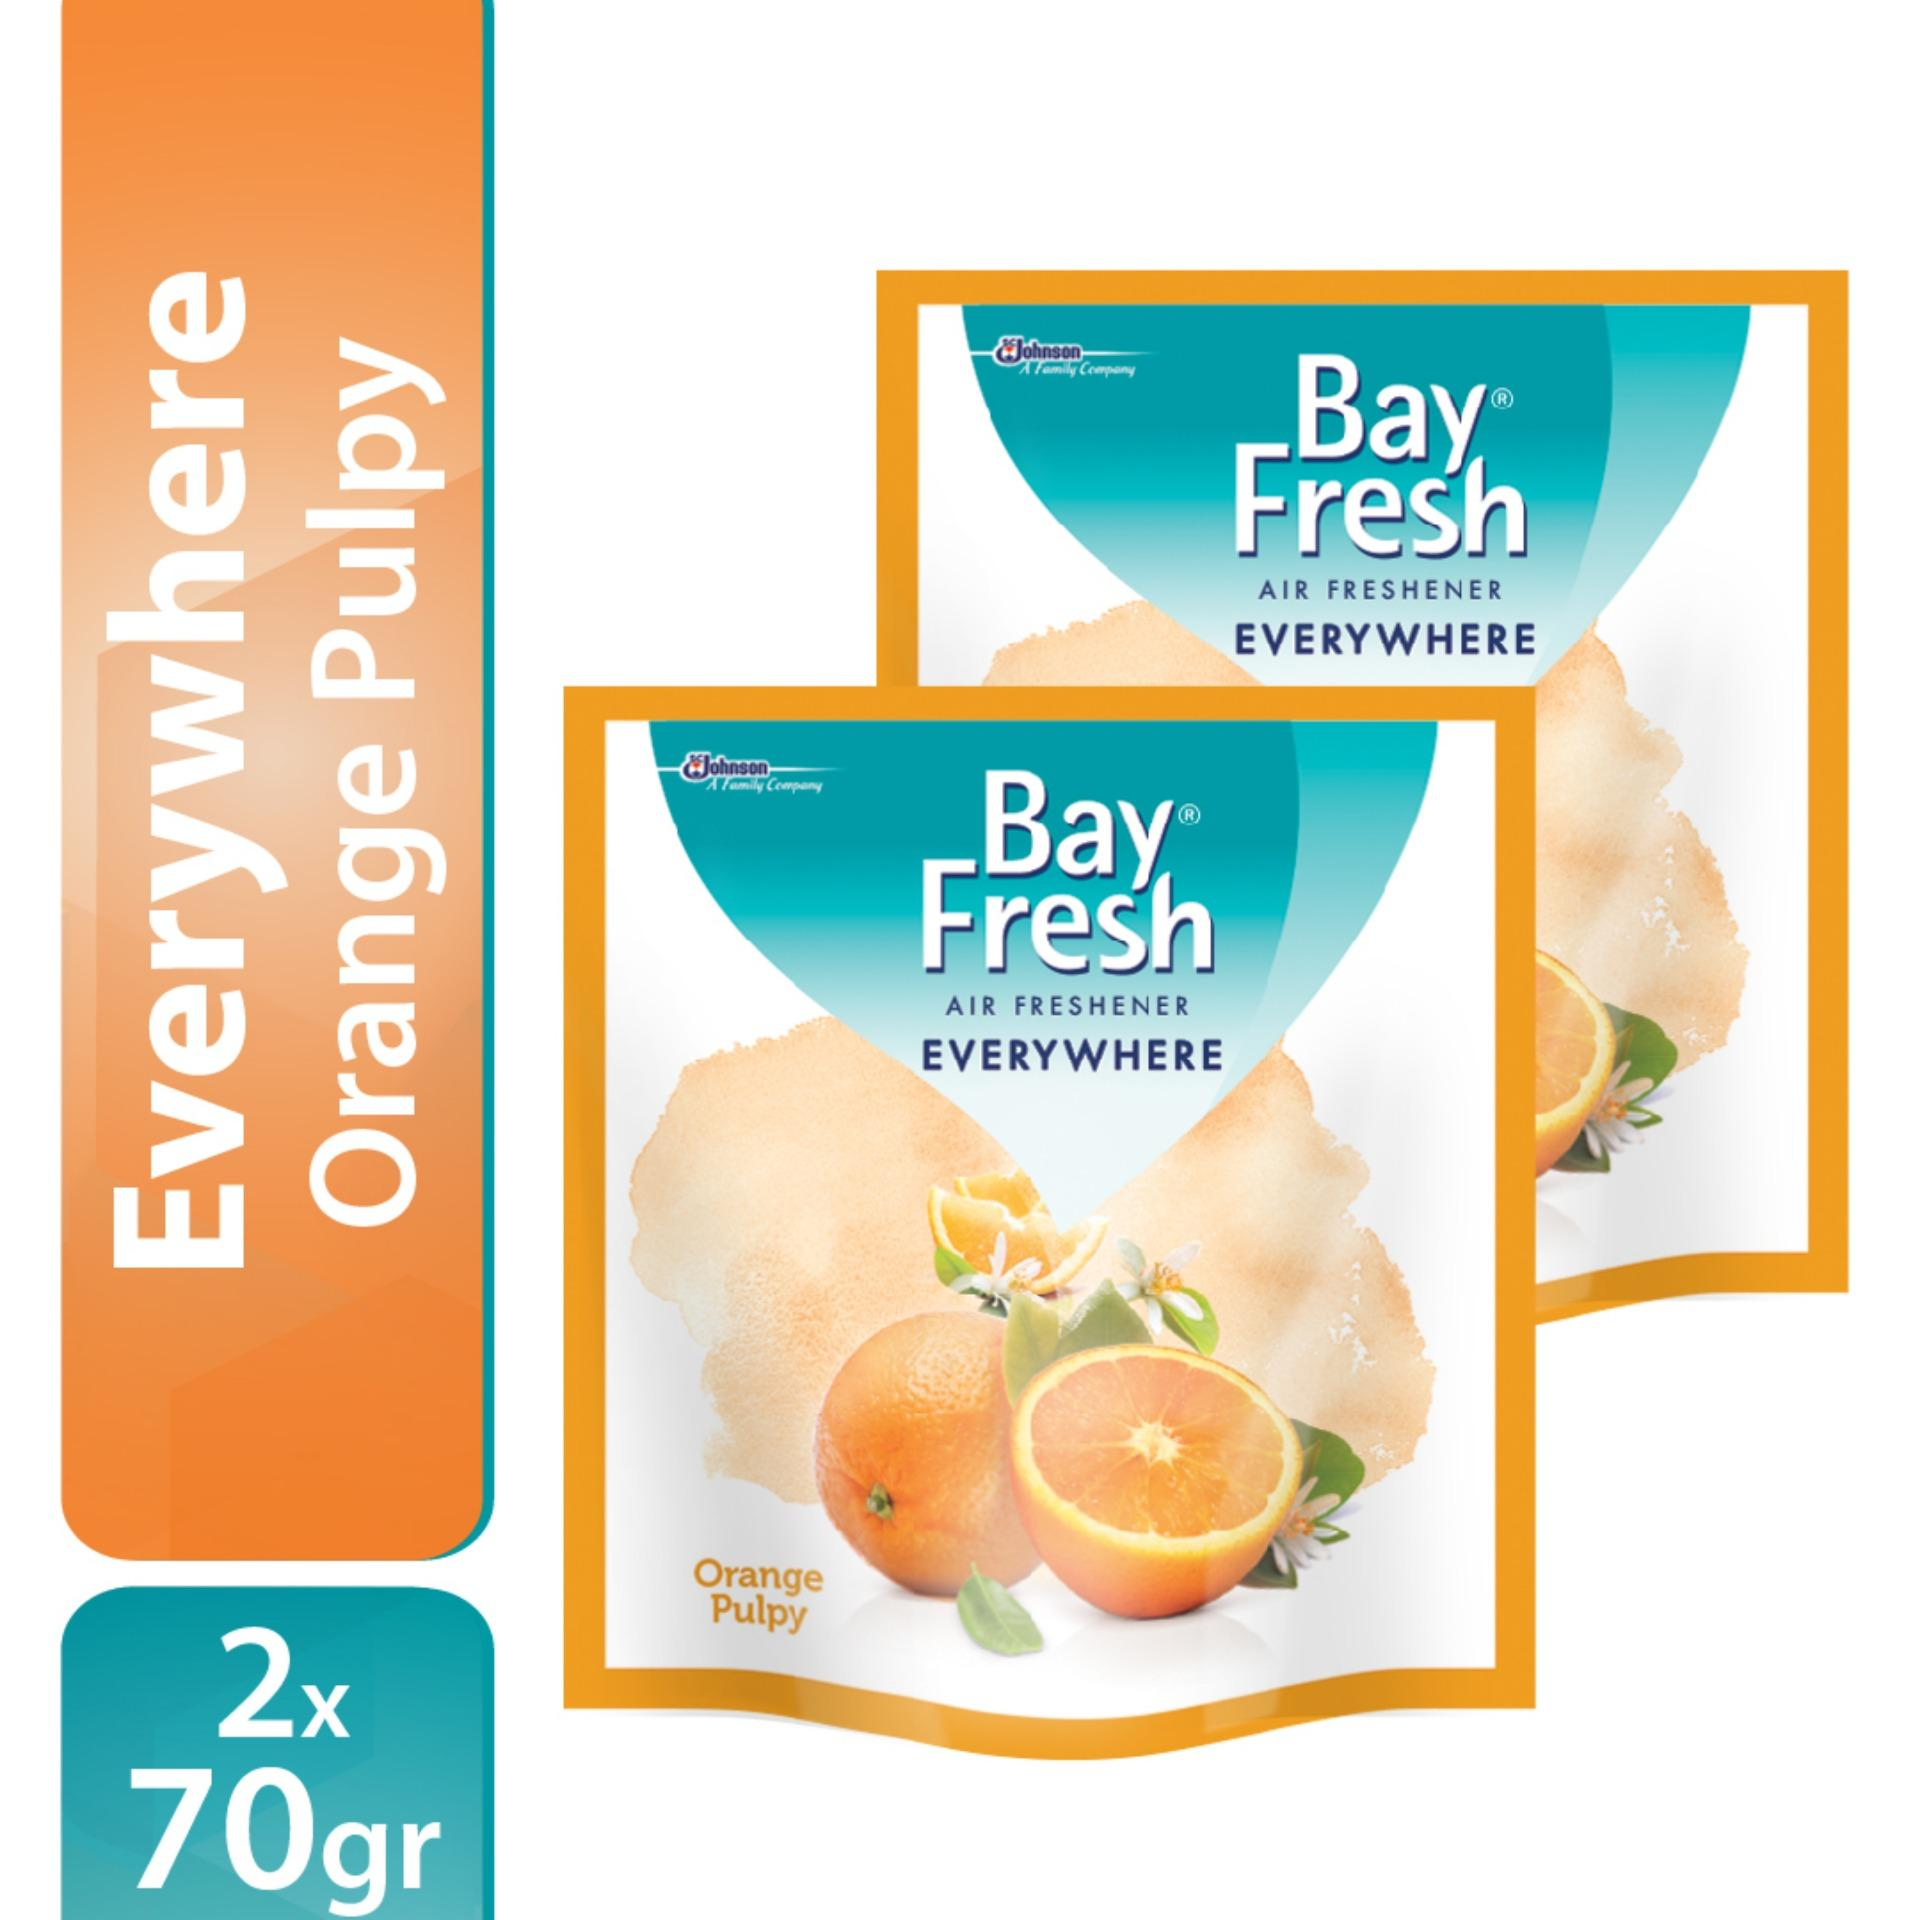 [Double Pack] Bayfresh Everywhere Orange 70gr x 2pcs